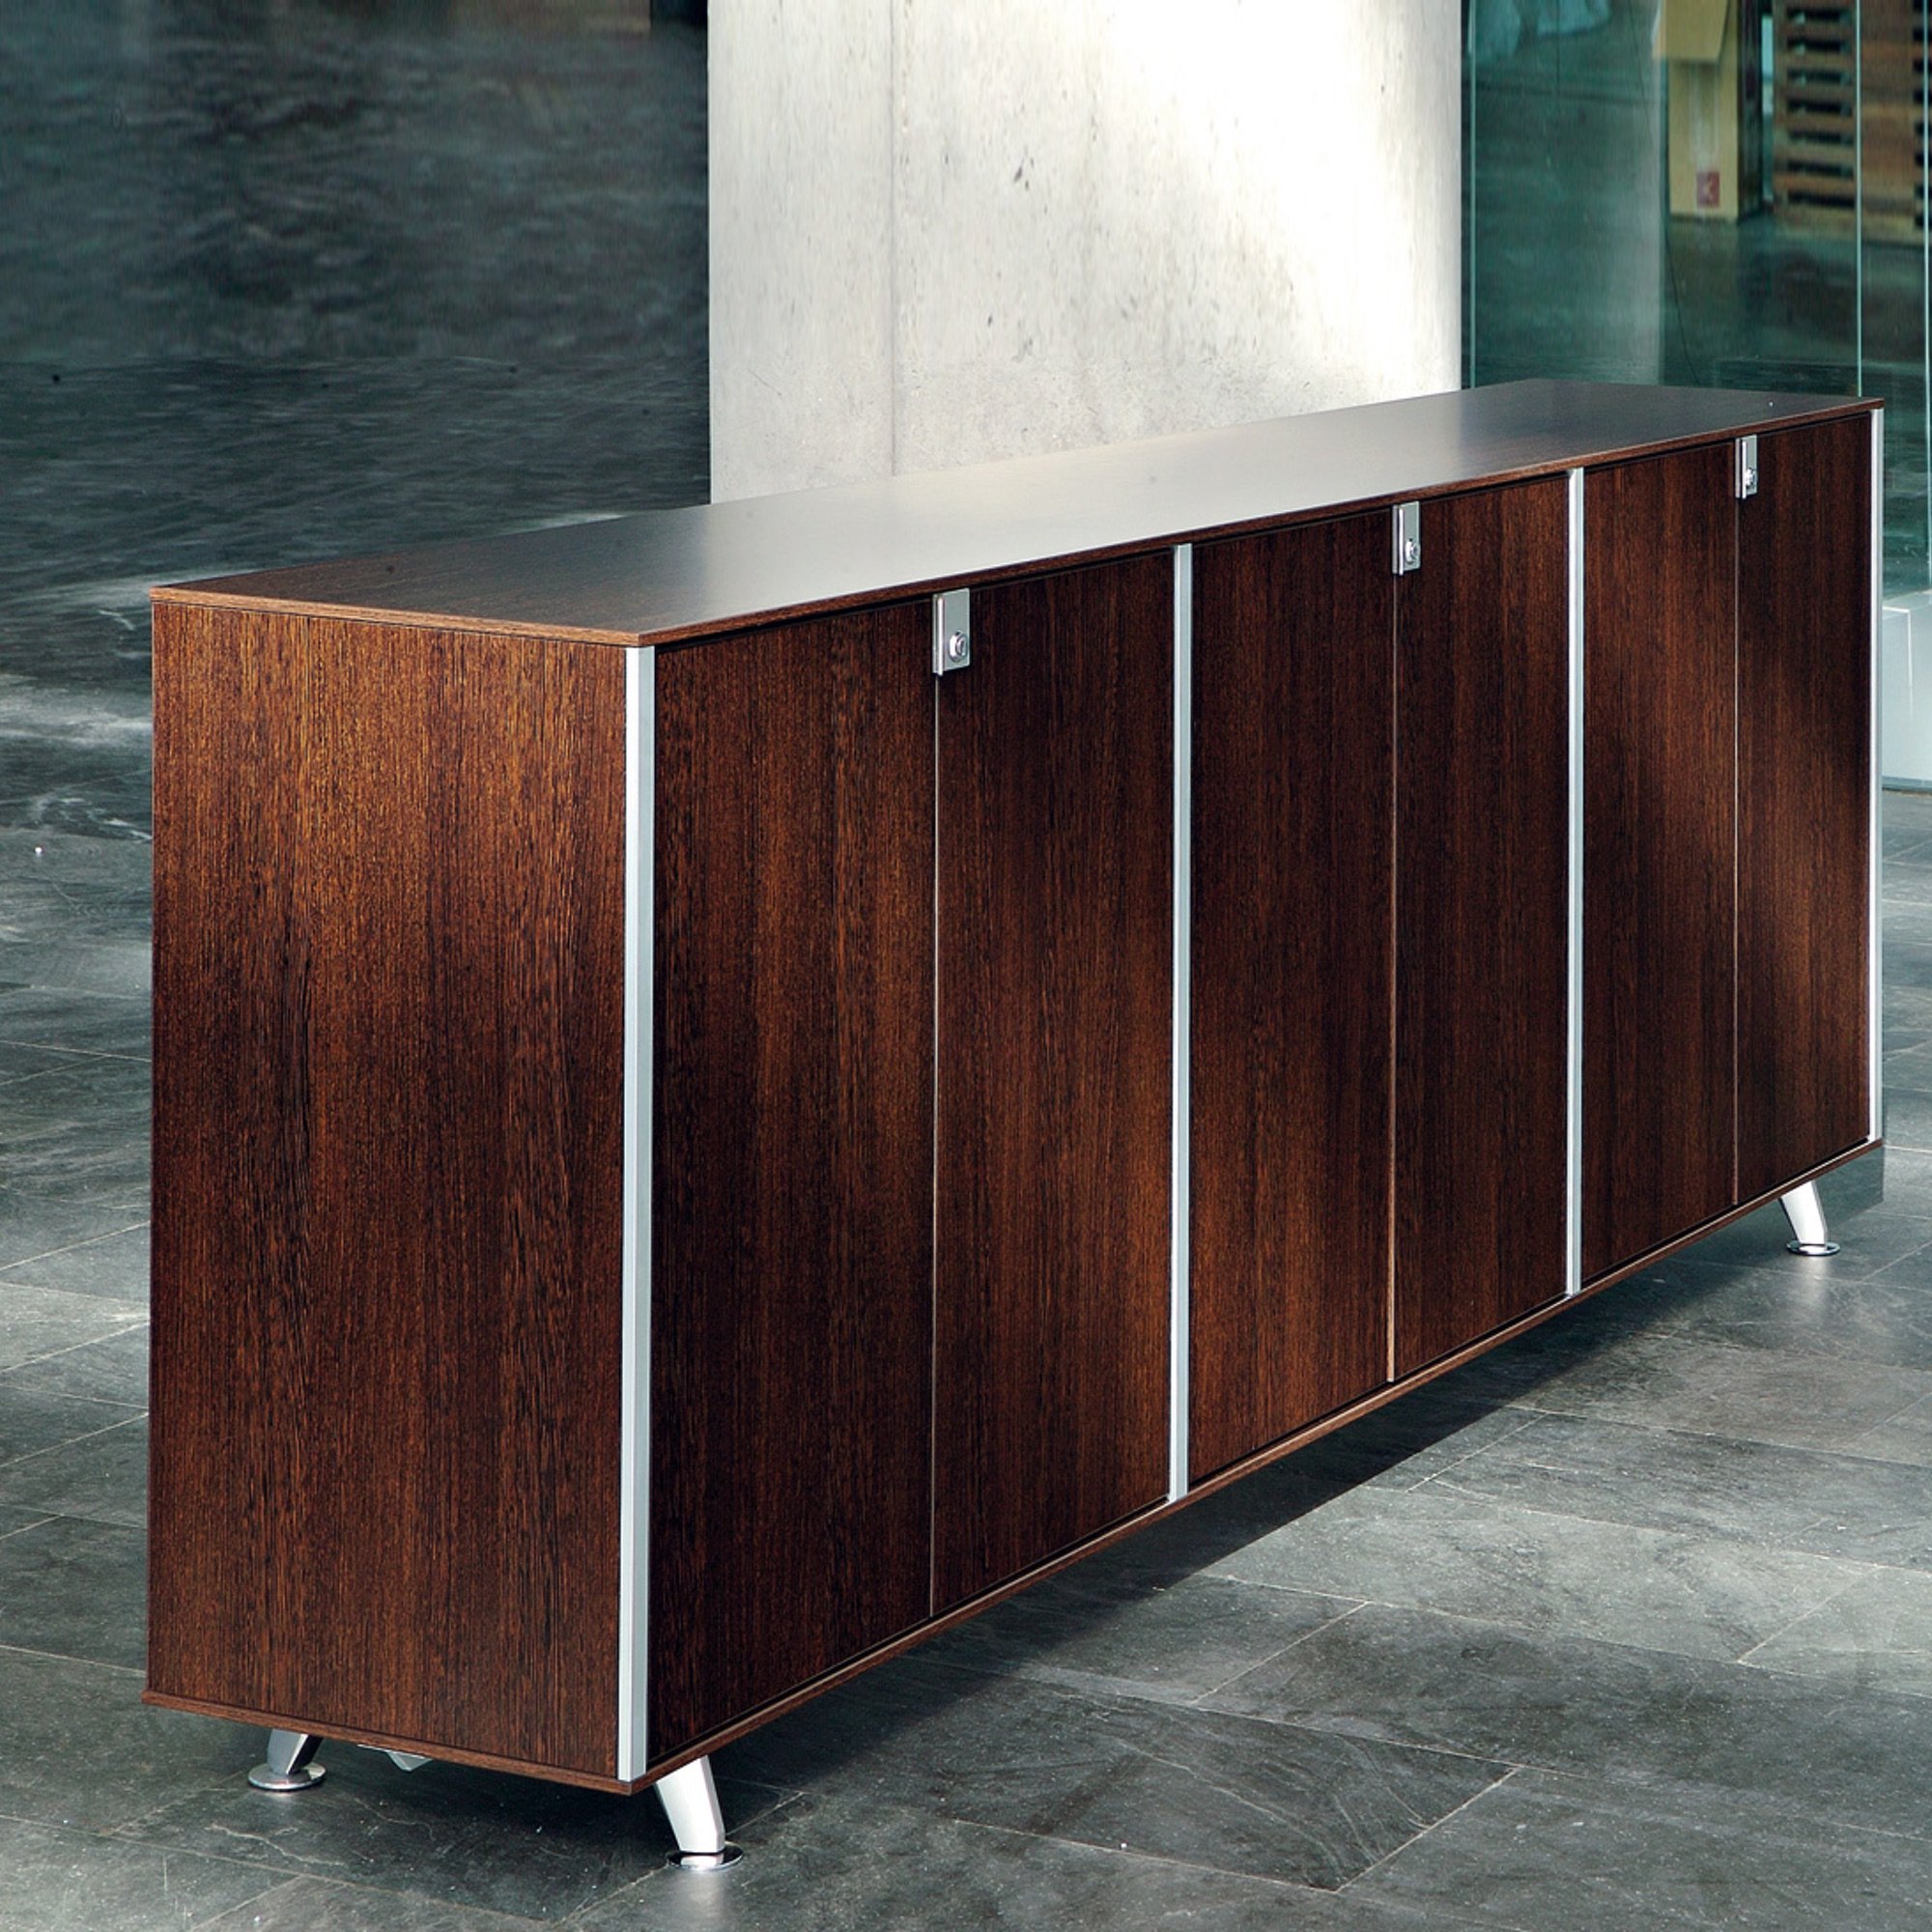 Actiu Block 35 Sideboard Mit Türen Aus Melamin 2Oh Intended For Most Up To Date Alegre Sideboards (#1 of 20)